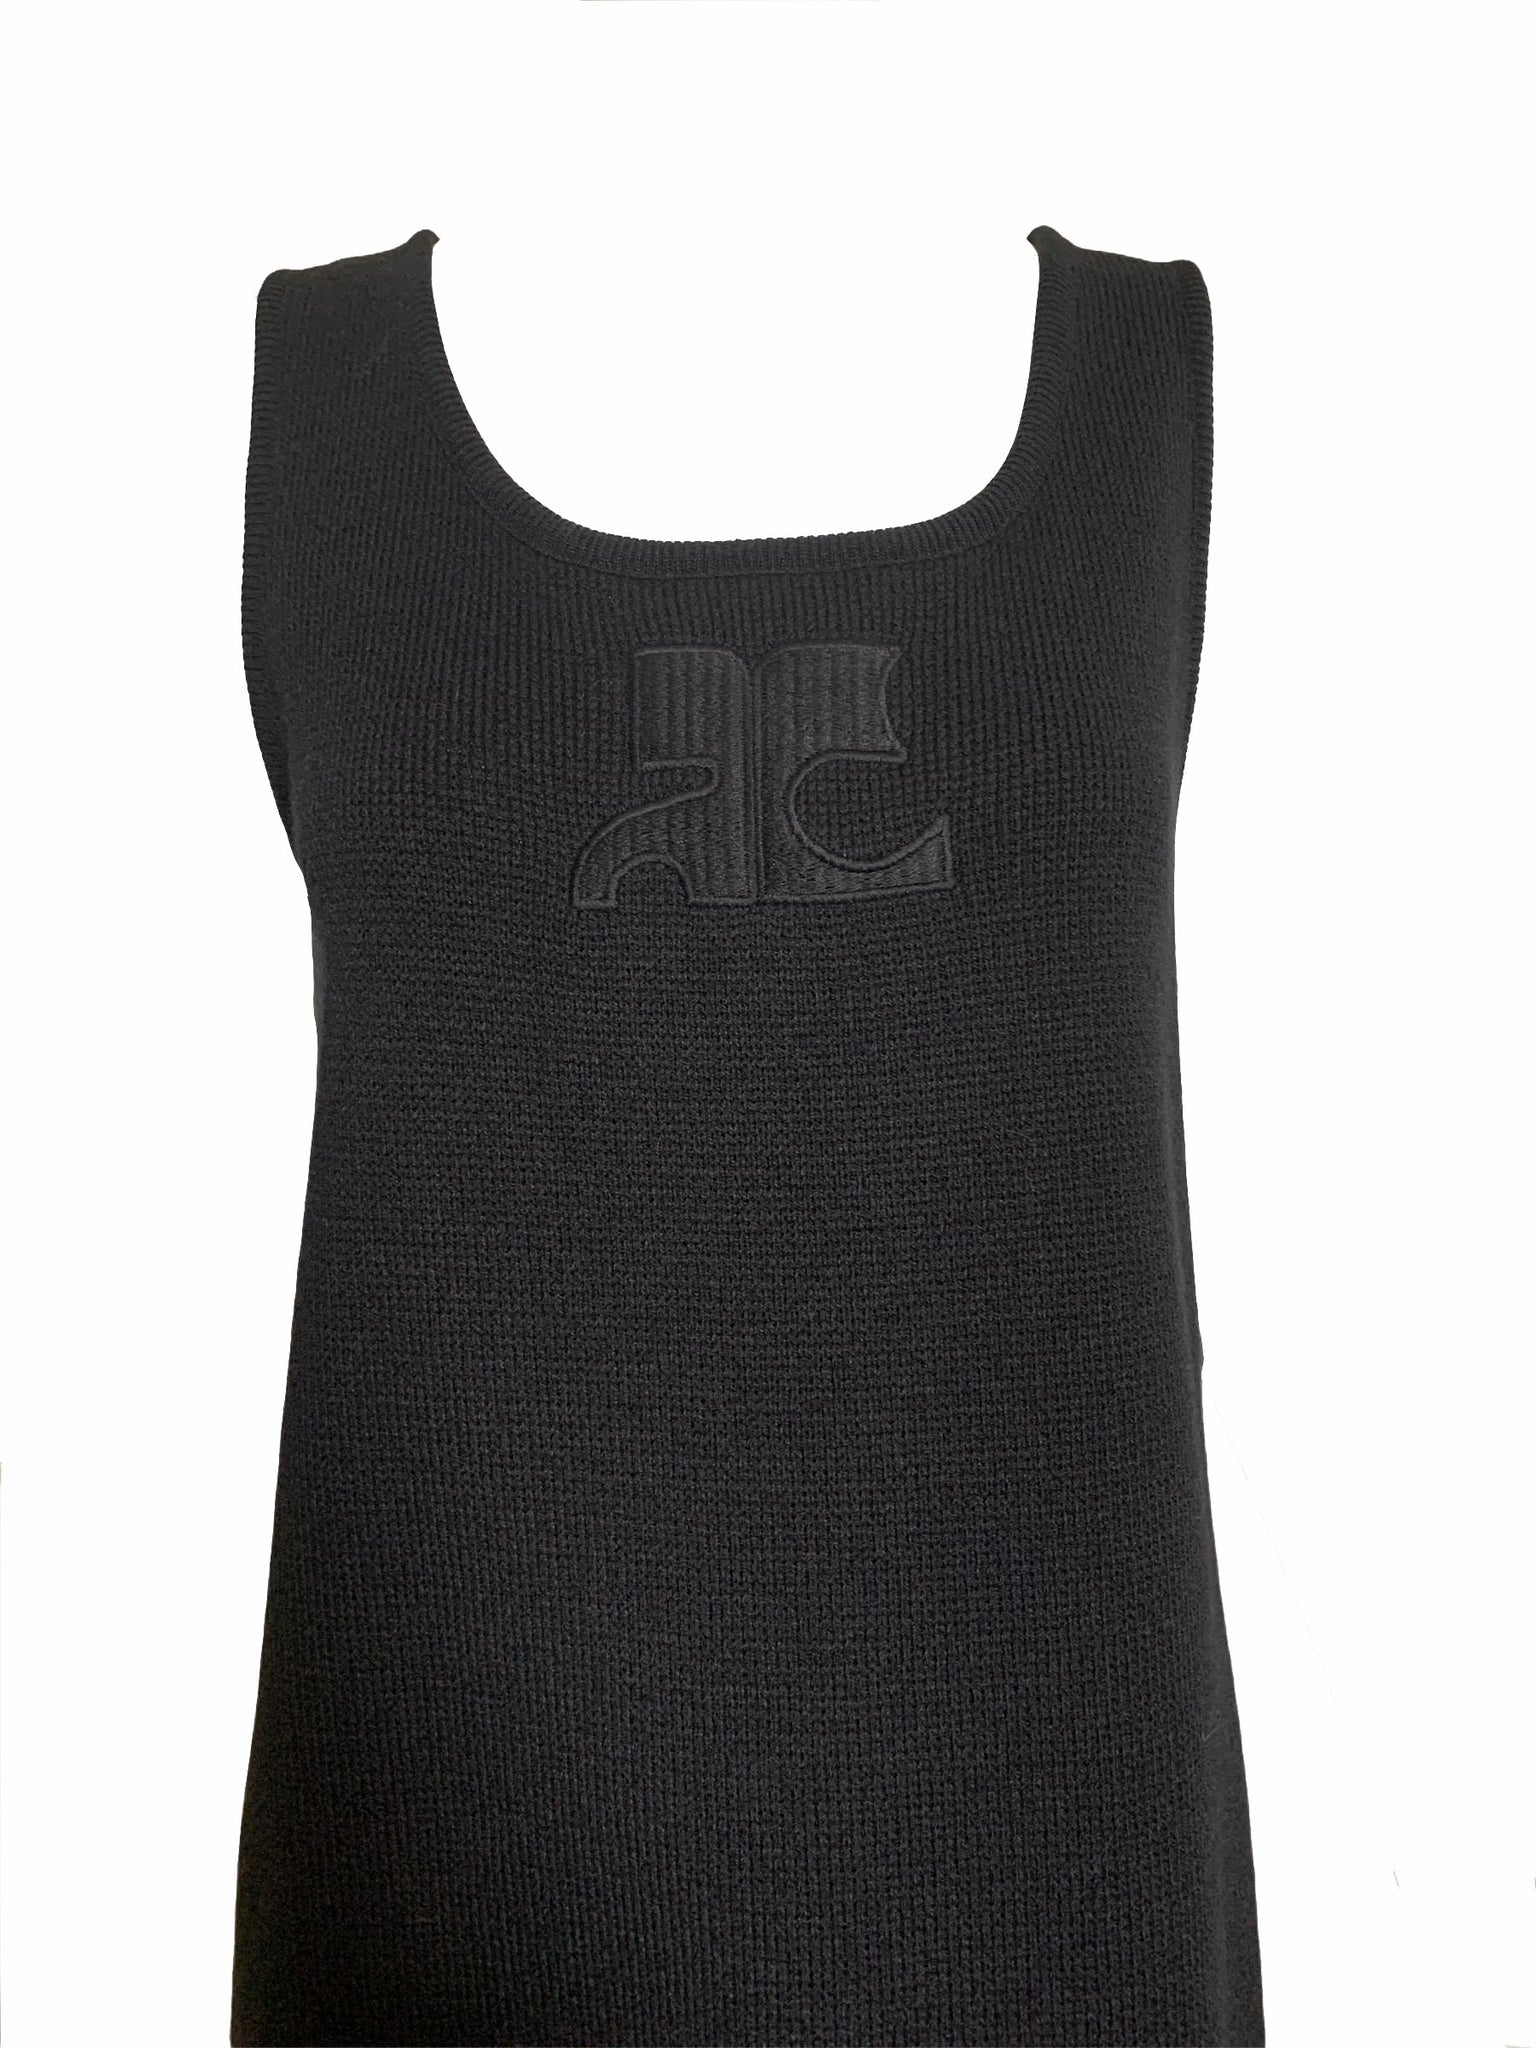 Courreges 80s Black Knit Tank Dress with Logo LOGO 4 of 4